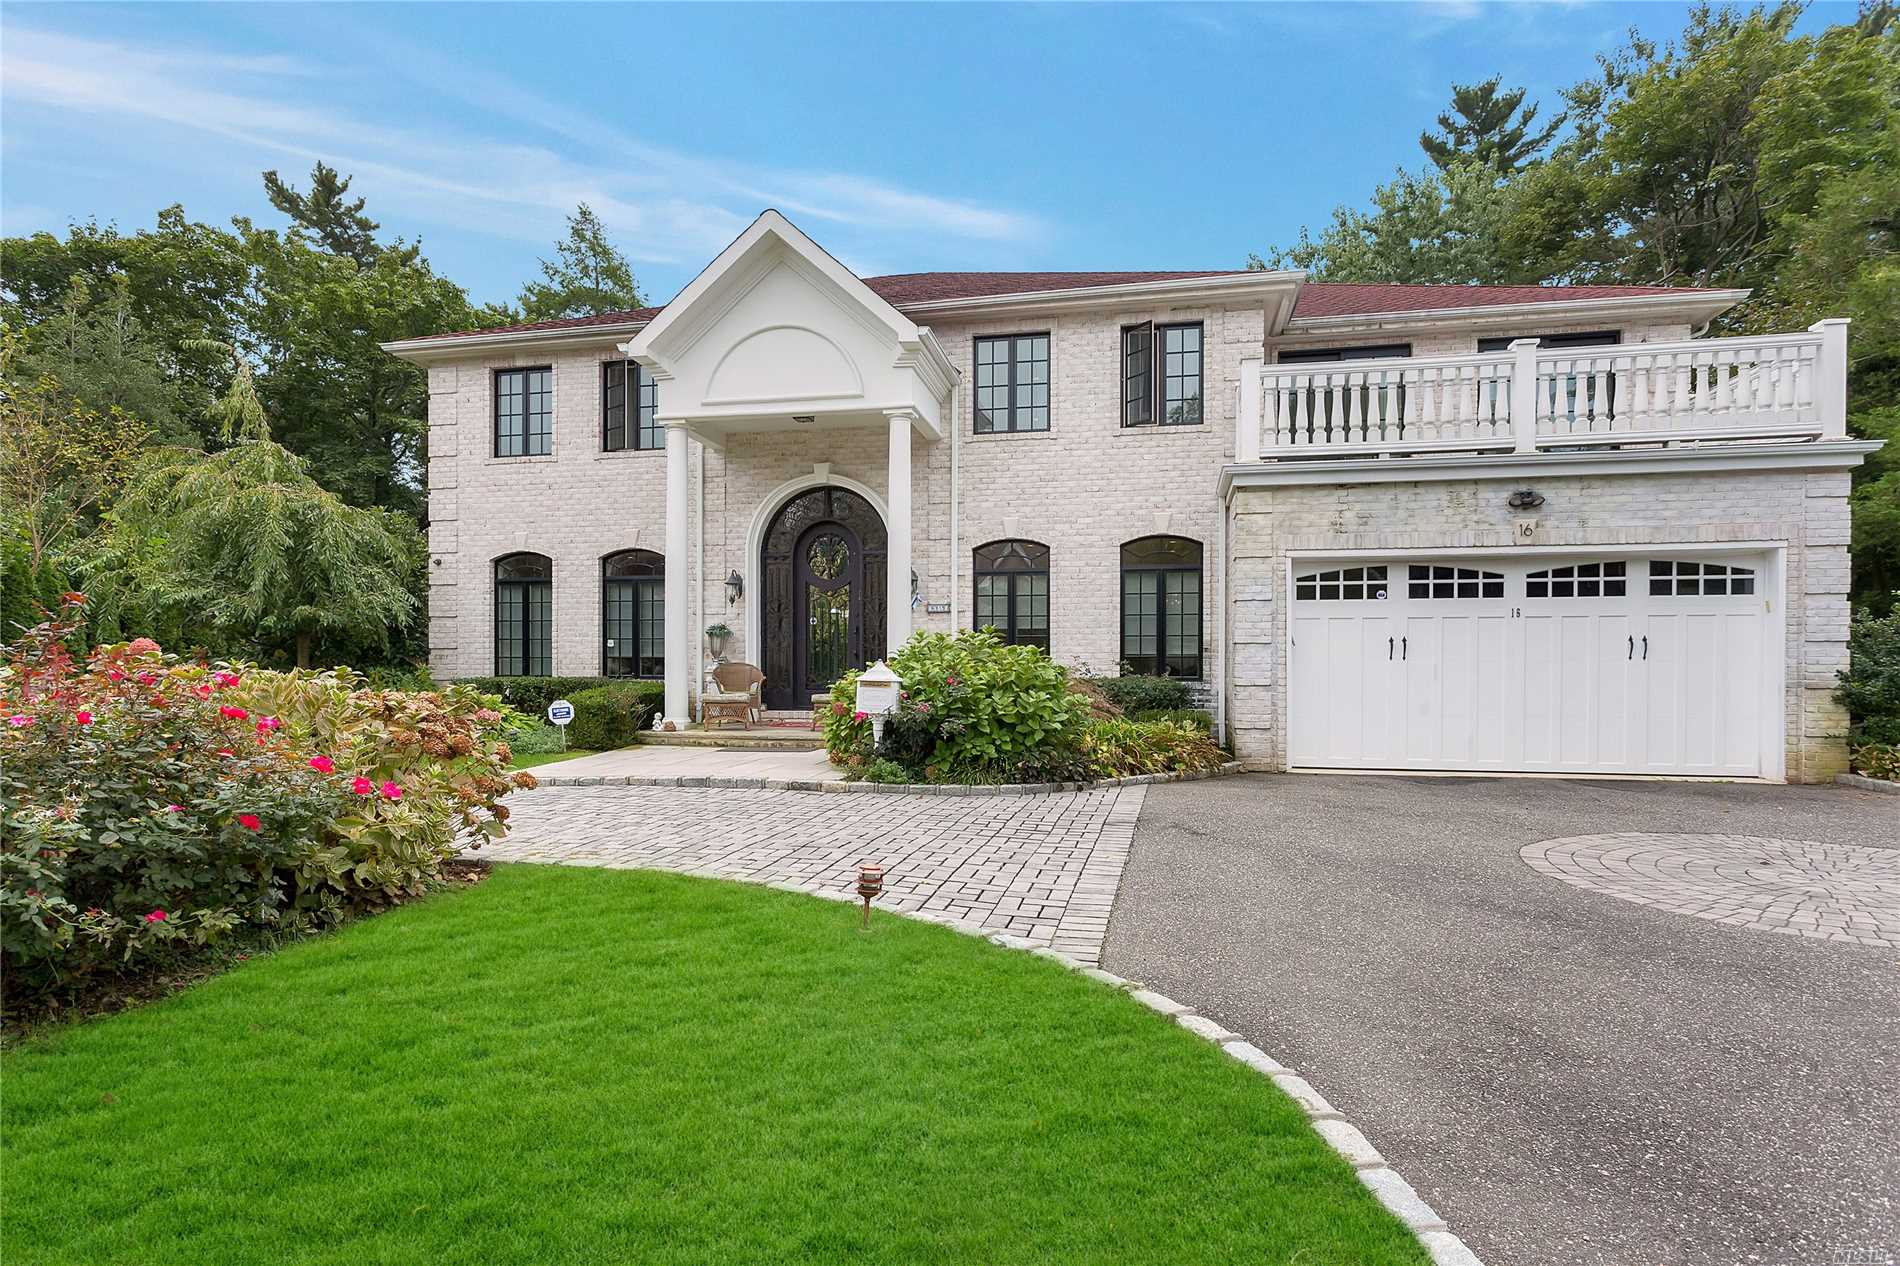 Photo of home for sale at 16 Horseshoe Ln, Roslyn Heights NY